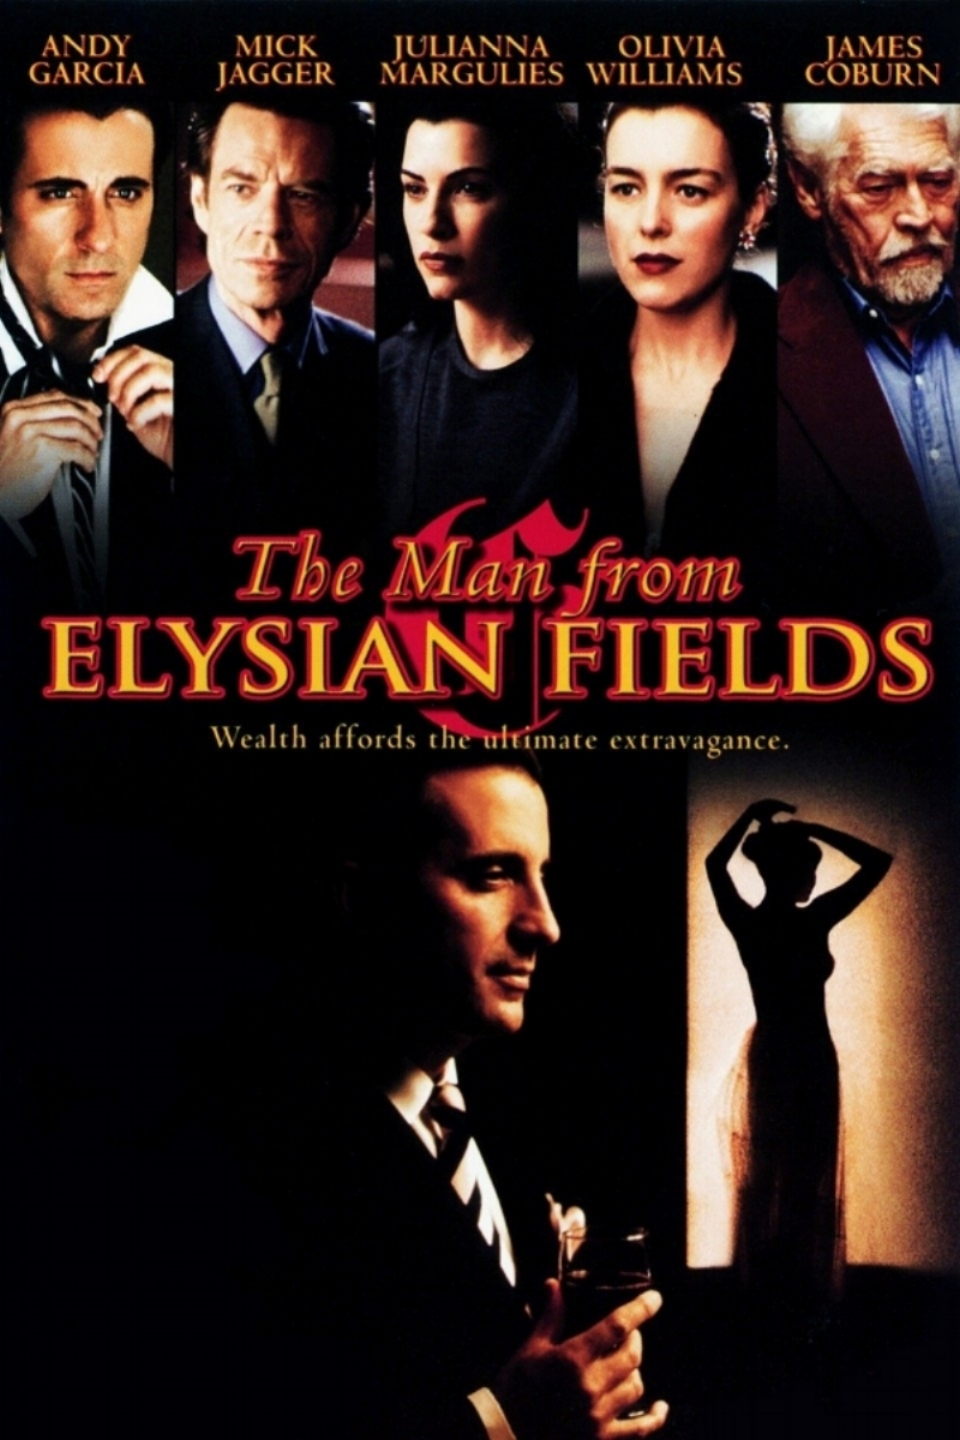 The Man From Elysian Fields - Also released as